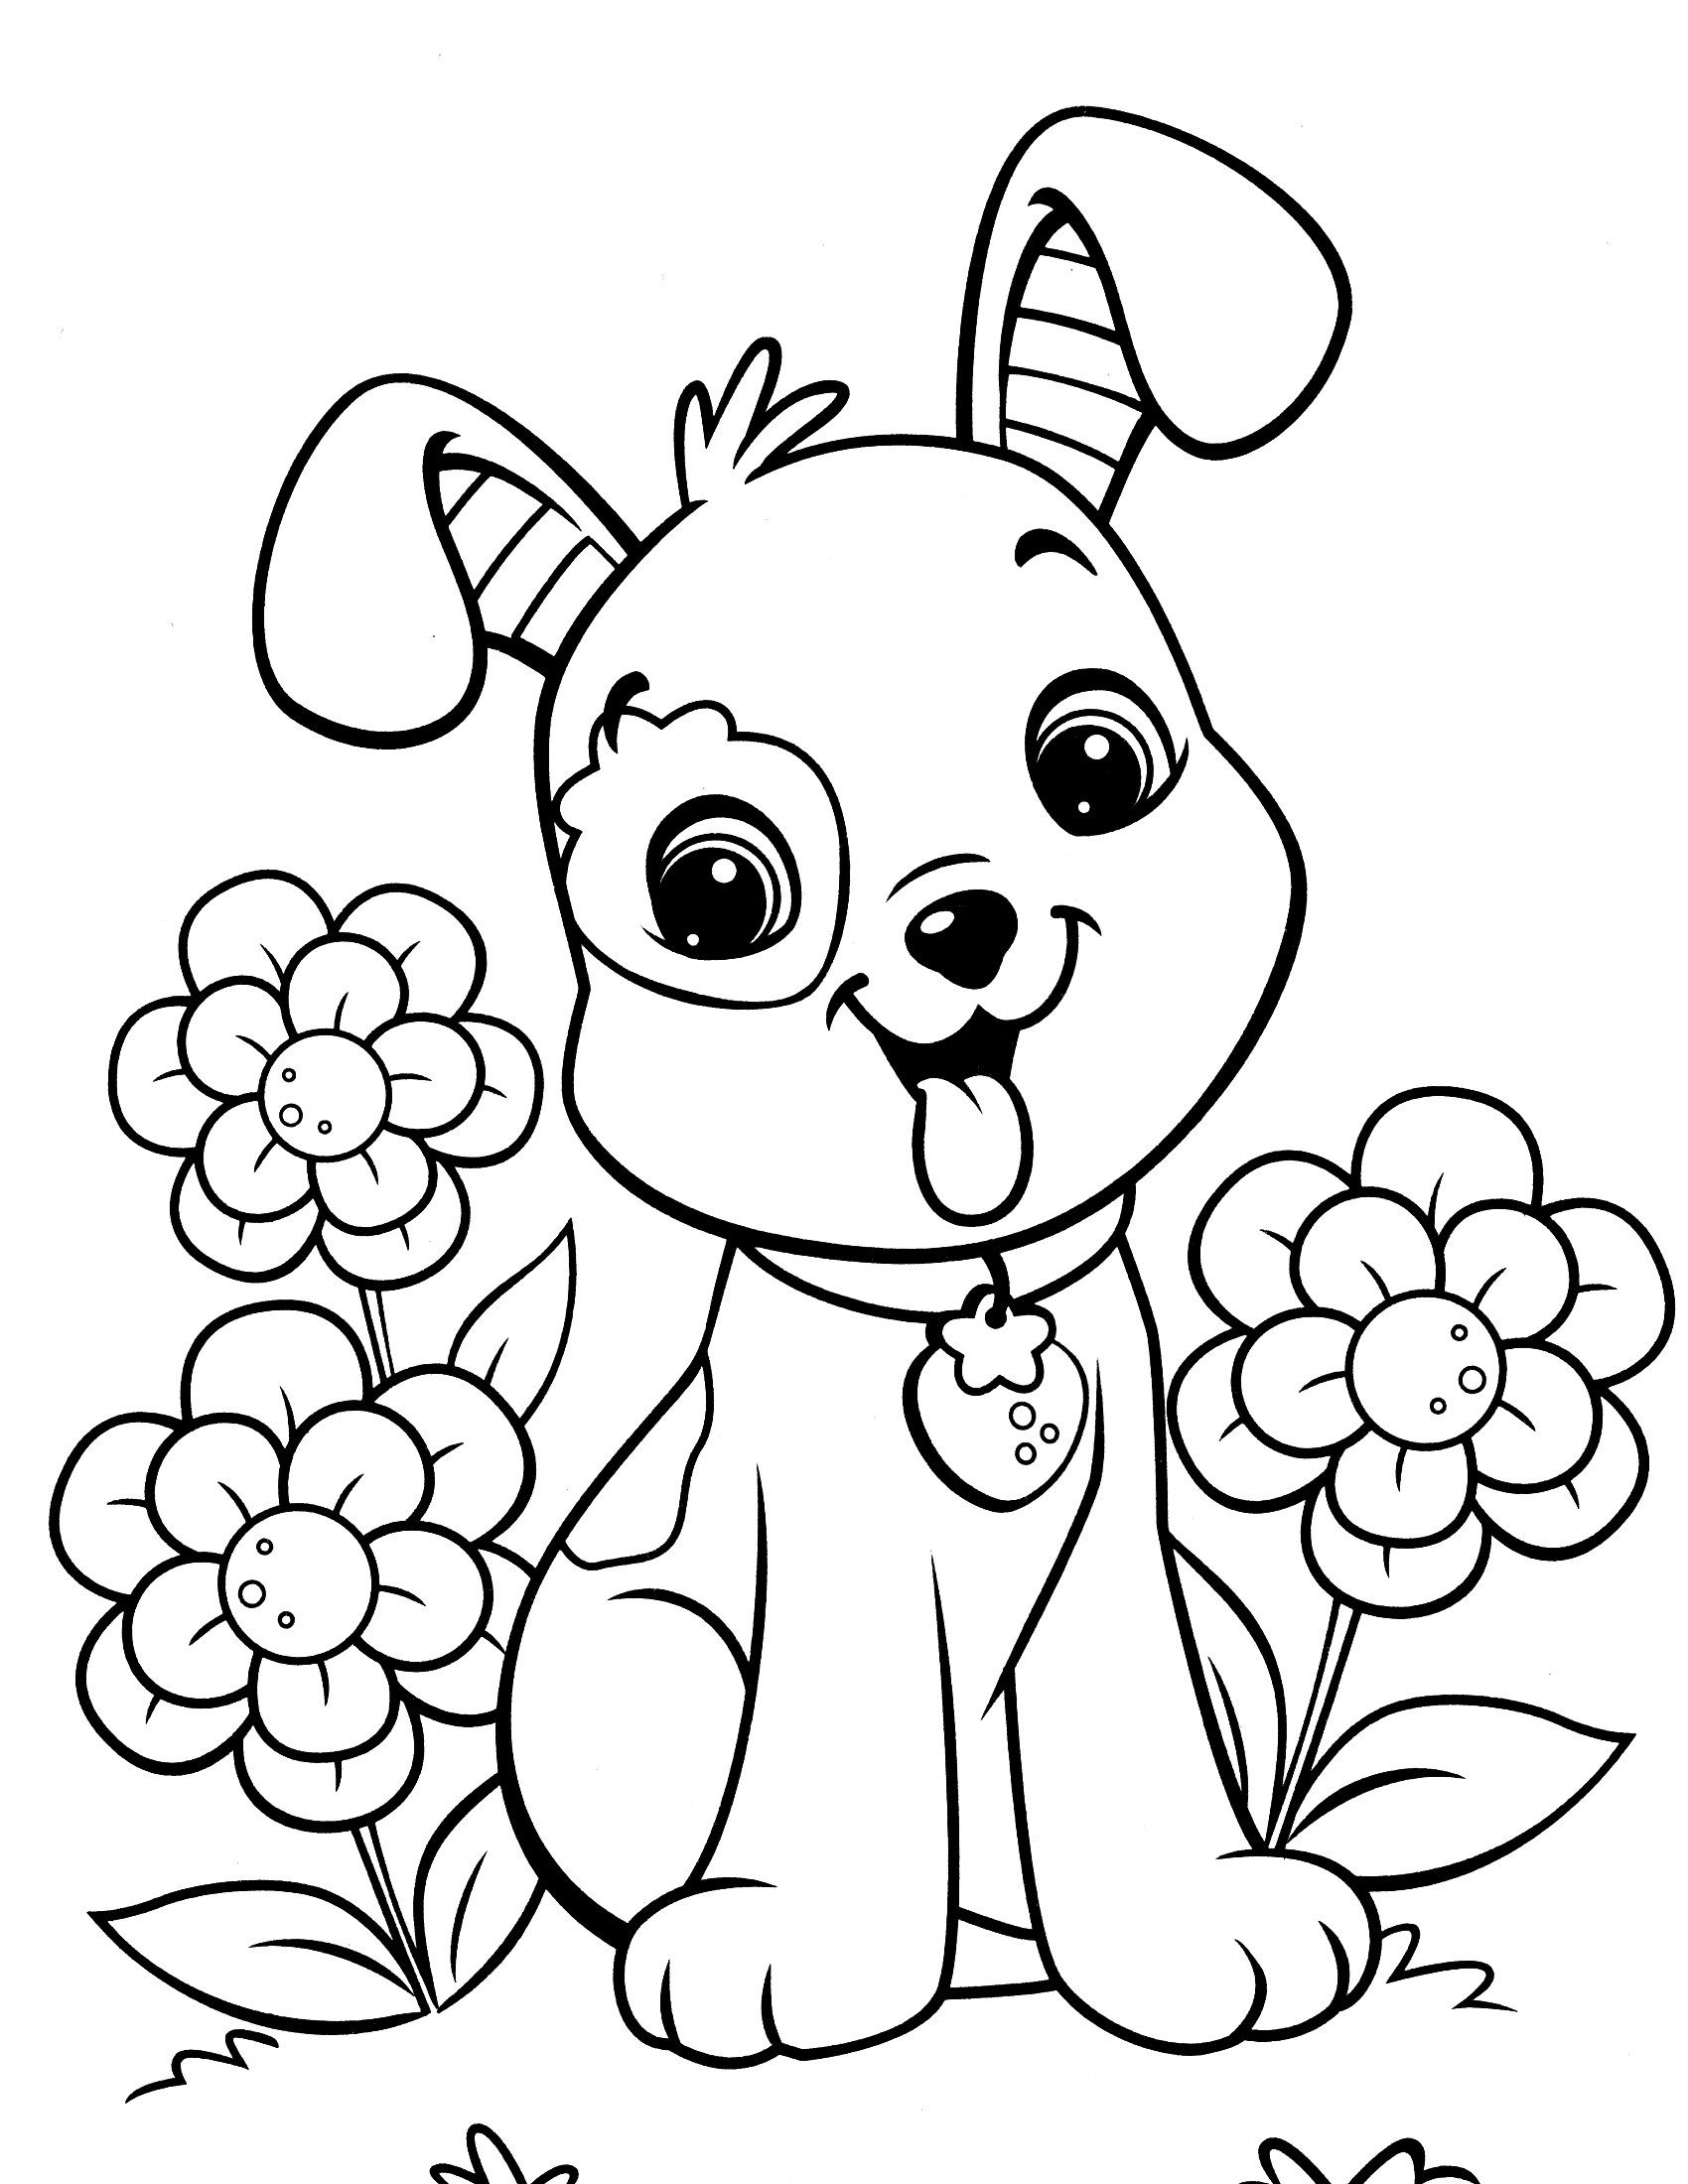 Image Result For Free Dog Coloring Pages   Coussin Cochon - Free Printable Dog Coloring Pages